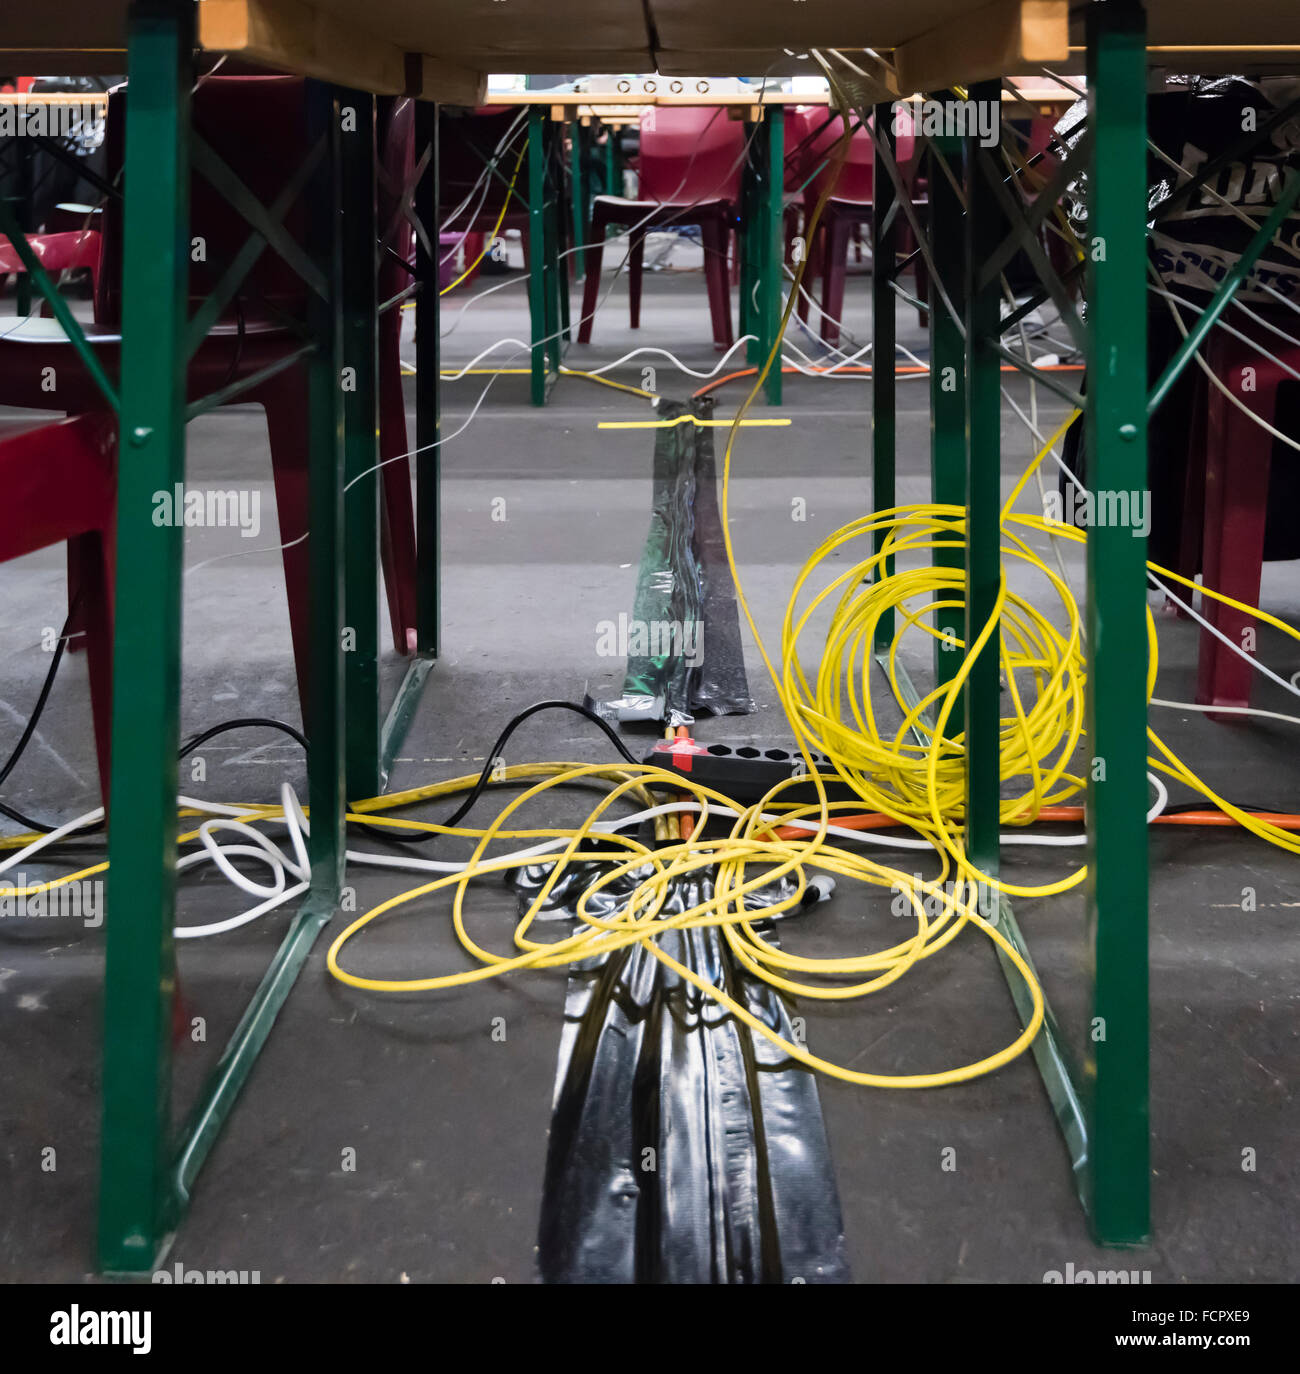 Chaotic computer network cabling under the desks at NetGame computer game convention. - Stock Image